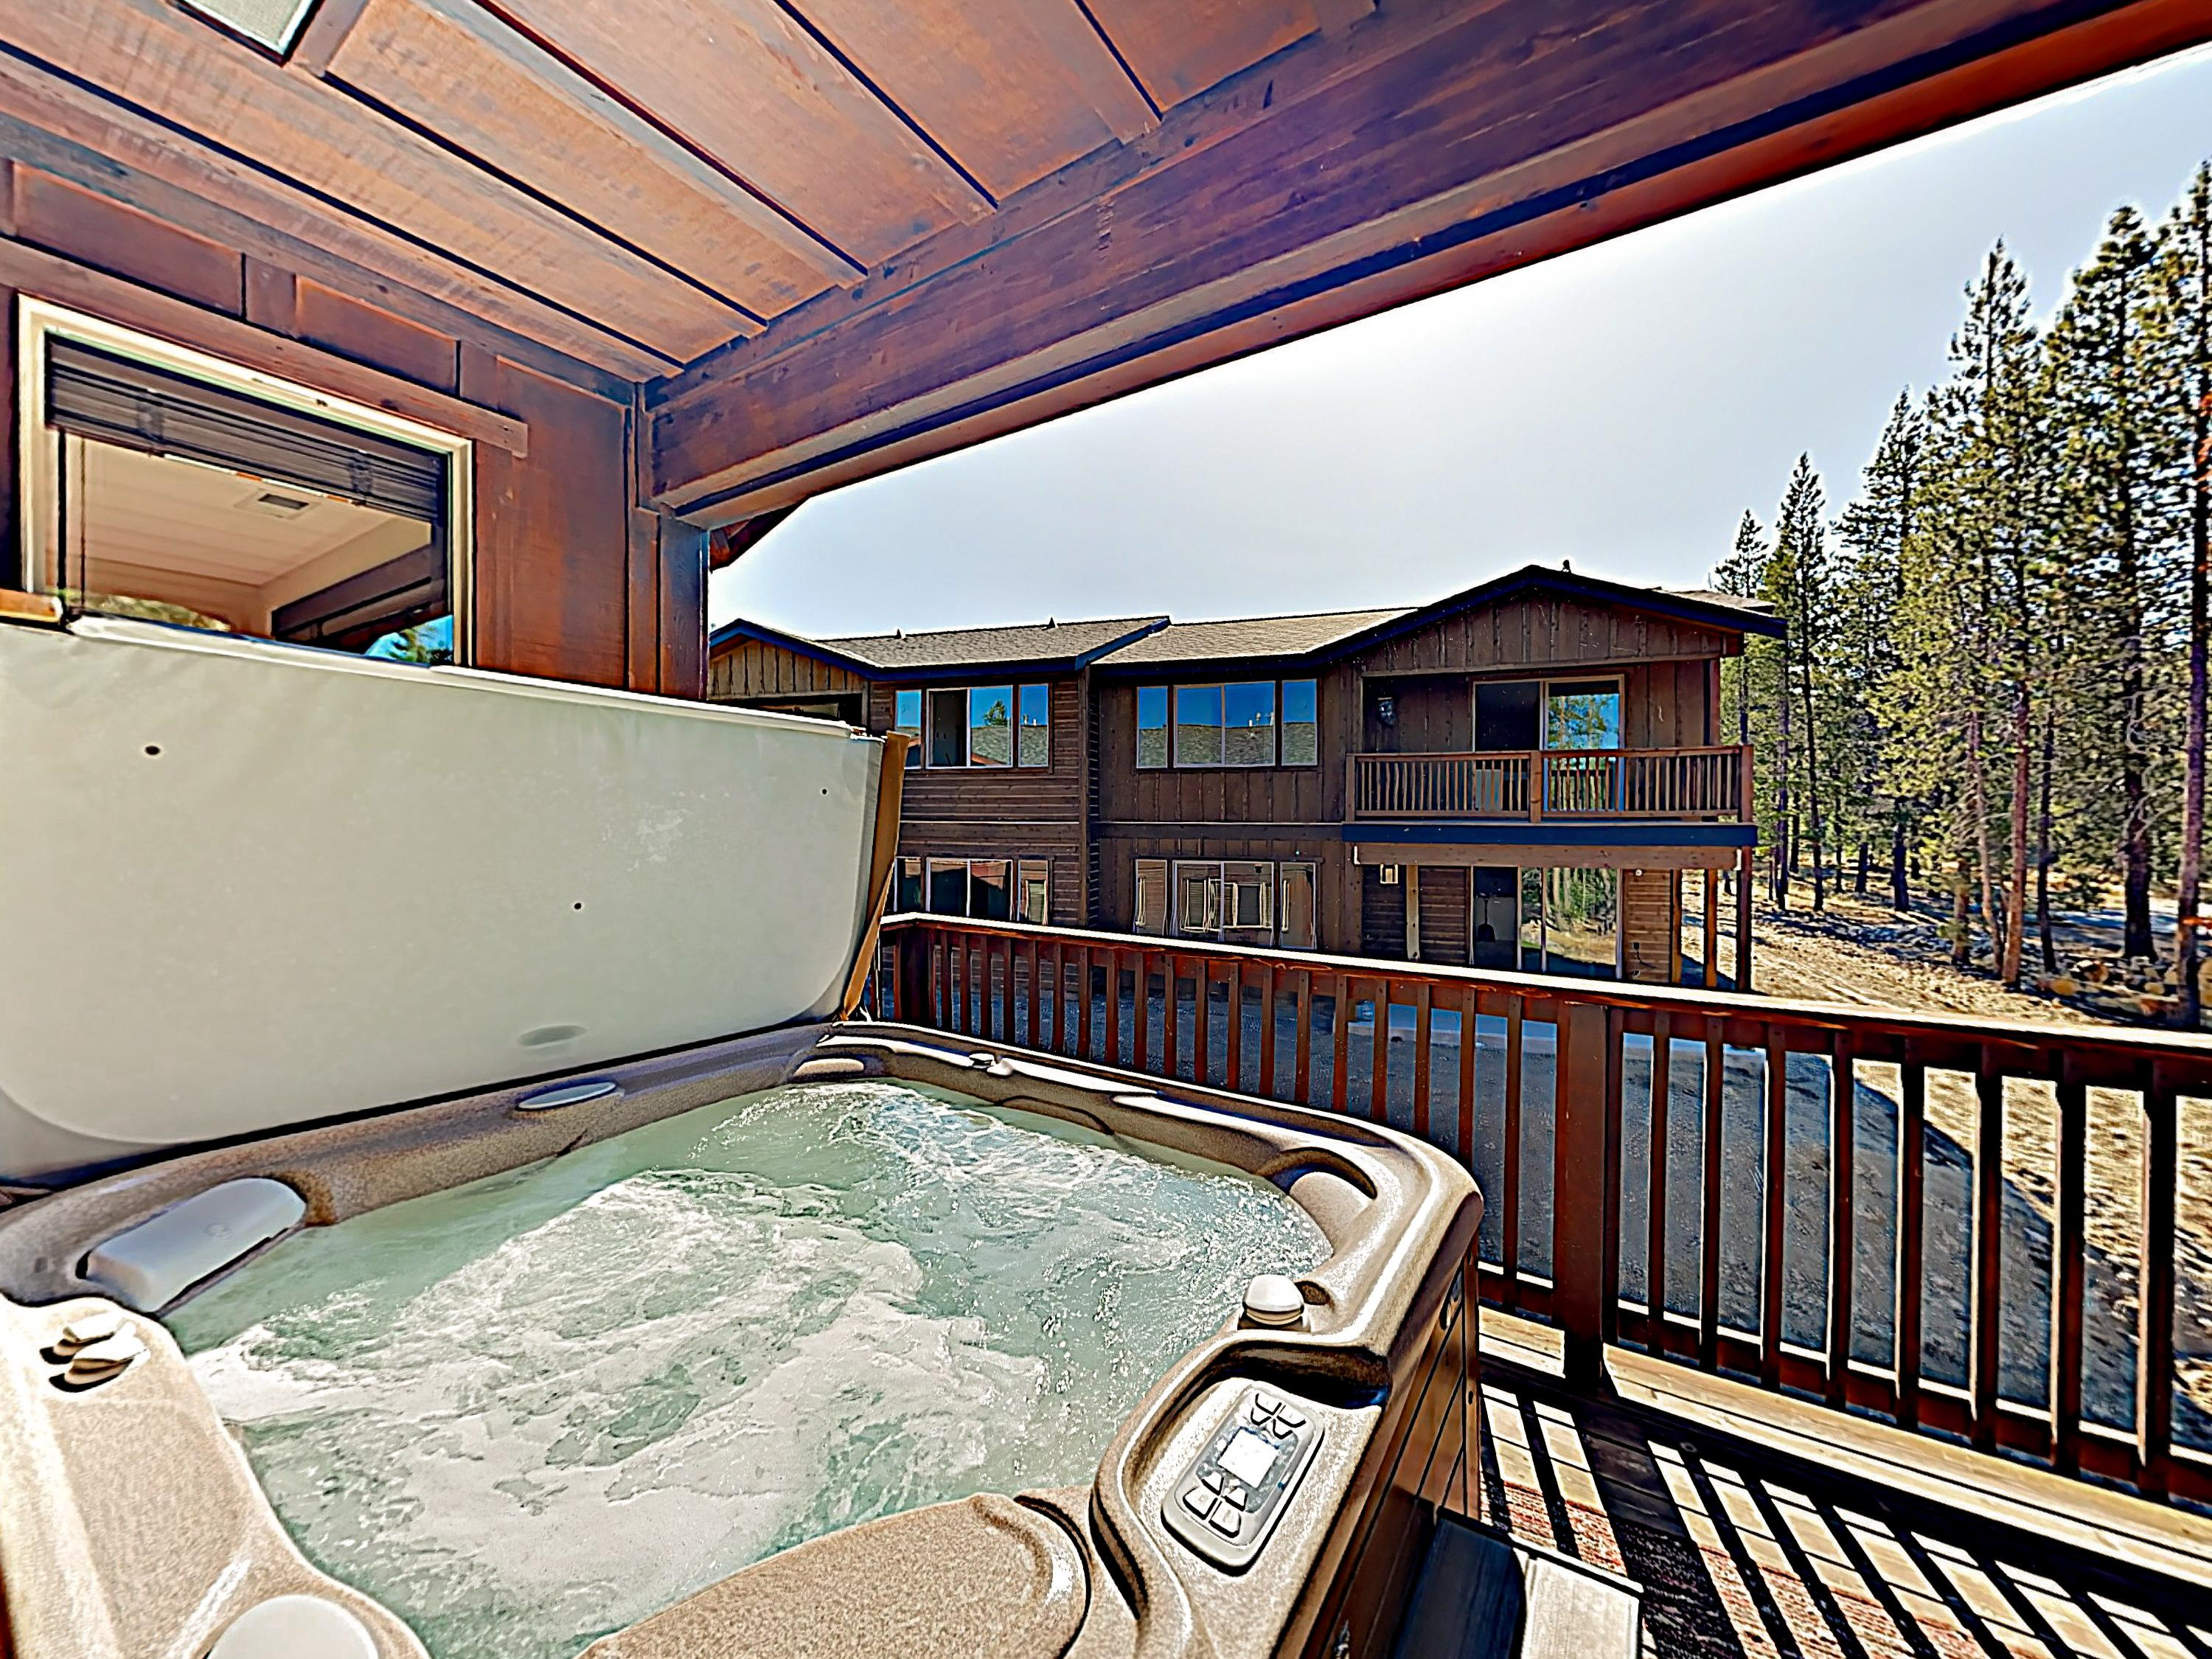 Unwind after your adventures in the private hot tub on the balcony.